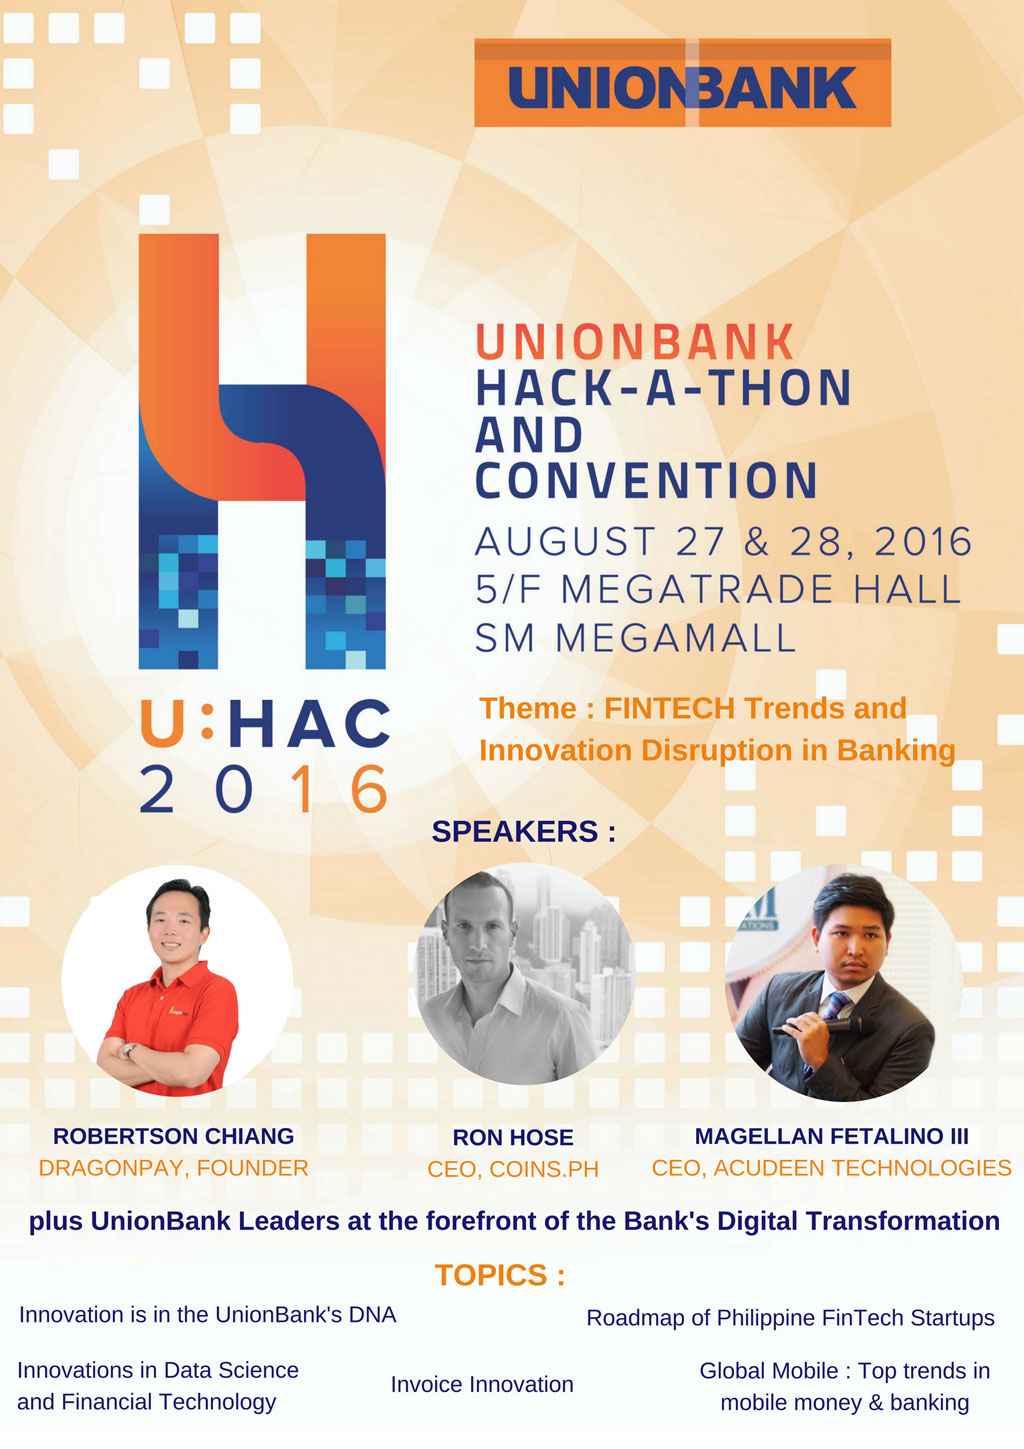 Unionbanks Hackathon and Convention - UHAC